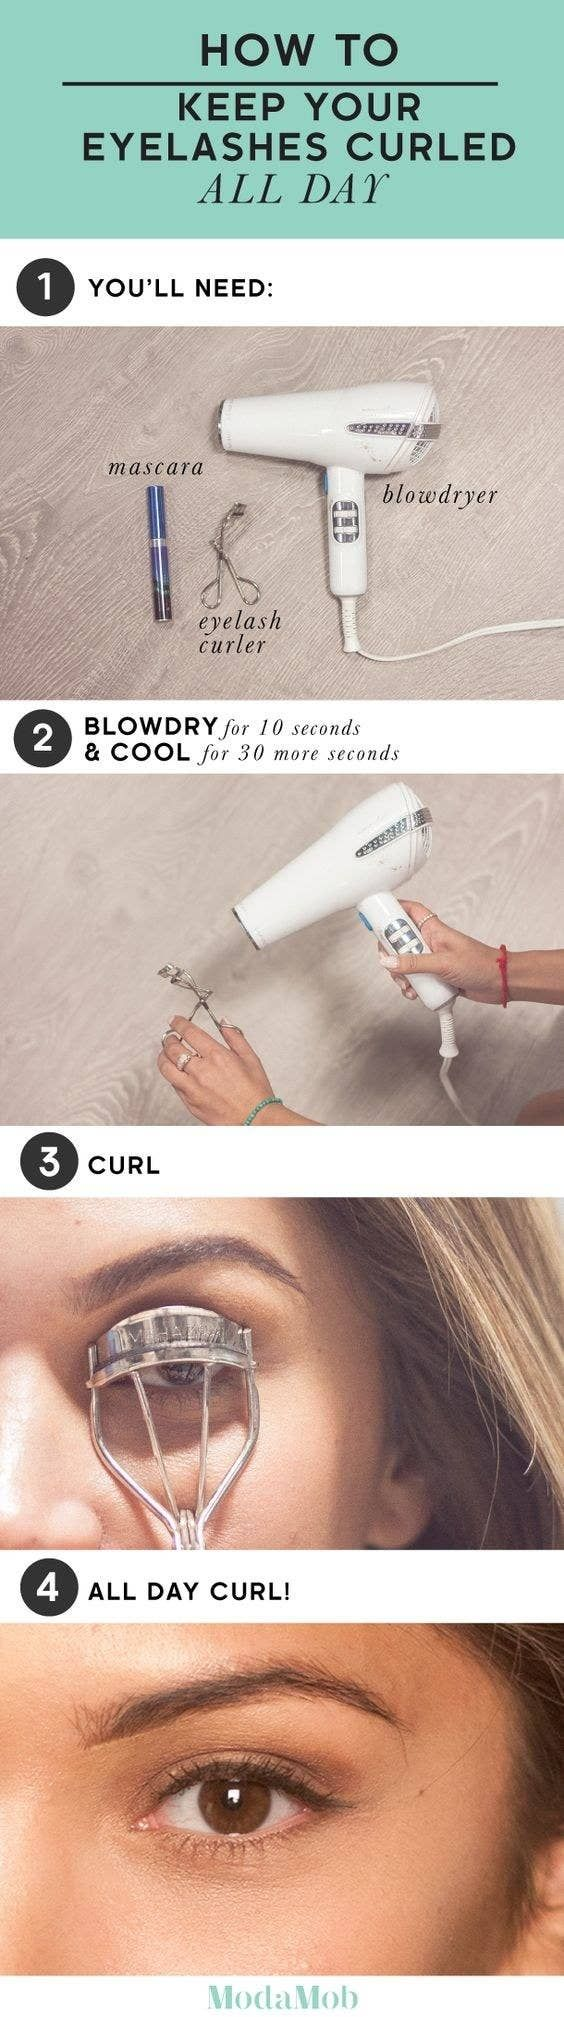 21 Ways To Make Your Makeup Last Forever in 2020 | Curling ...